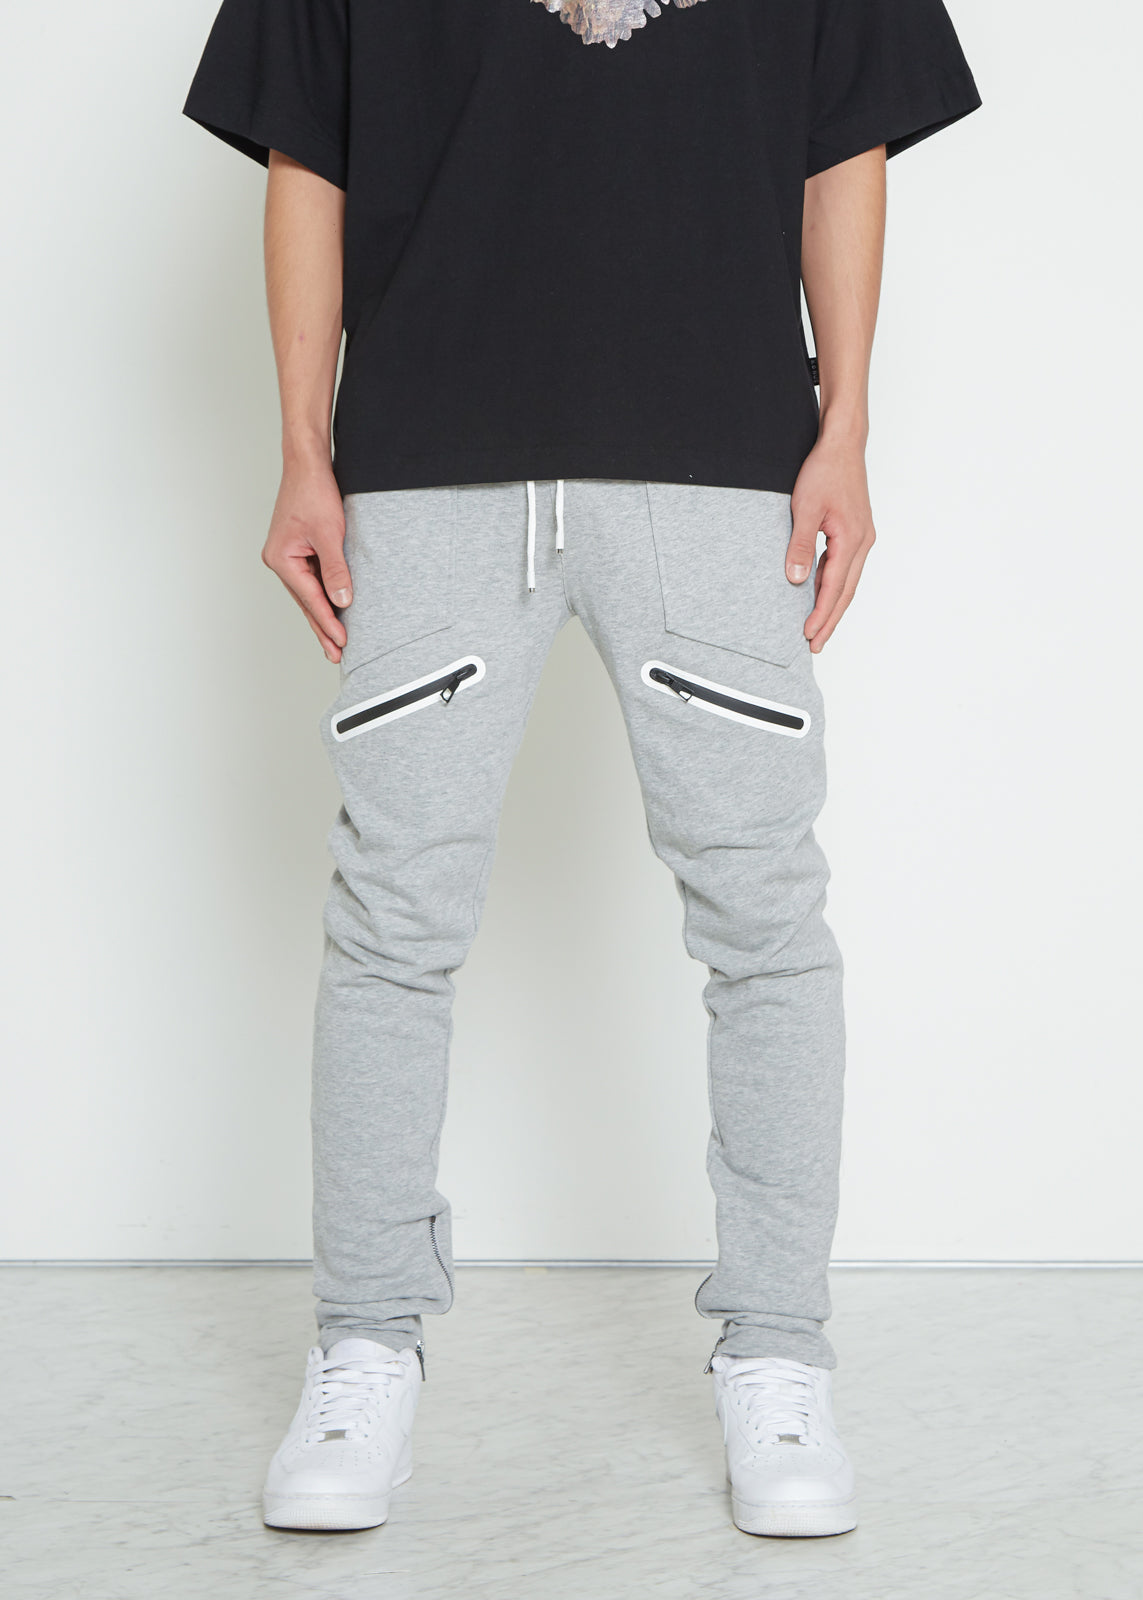 Konus Men's Heather Grey French Terry Sweatpants w/ Zipper Pockets - Shop at Konus